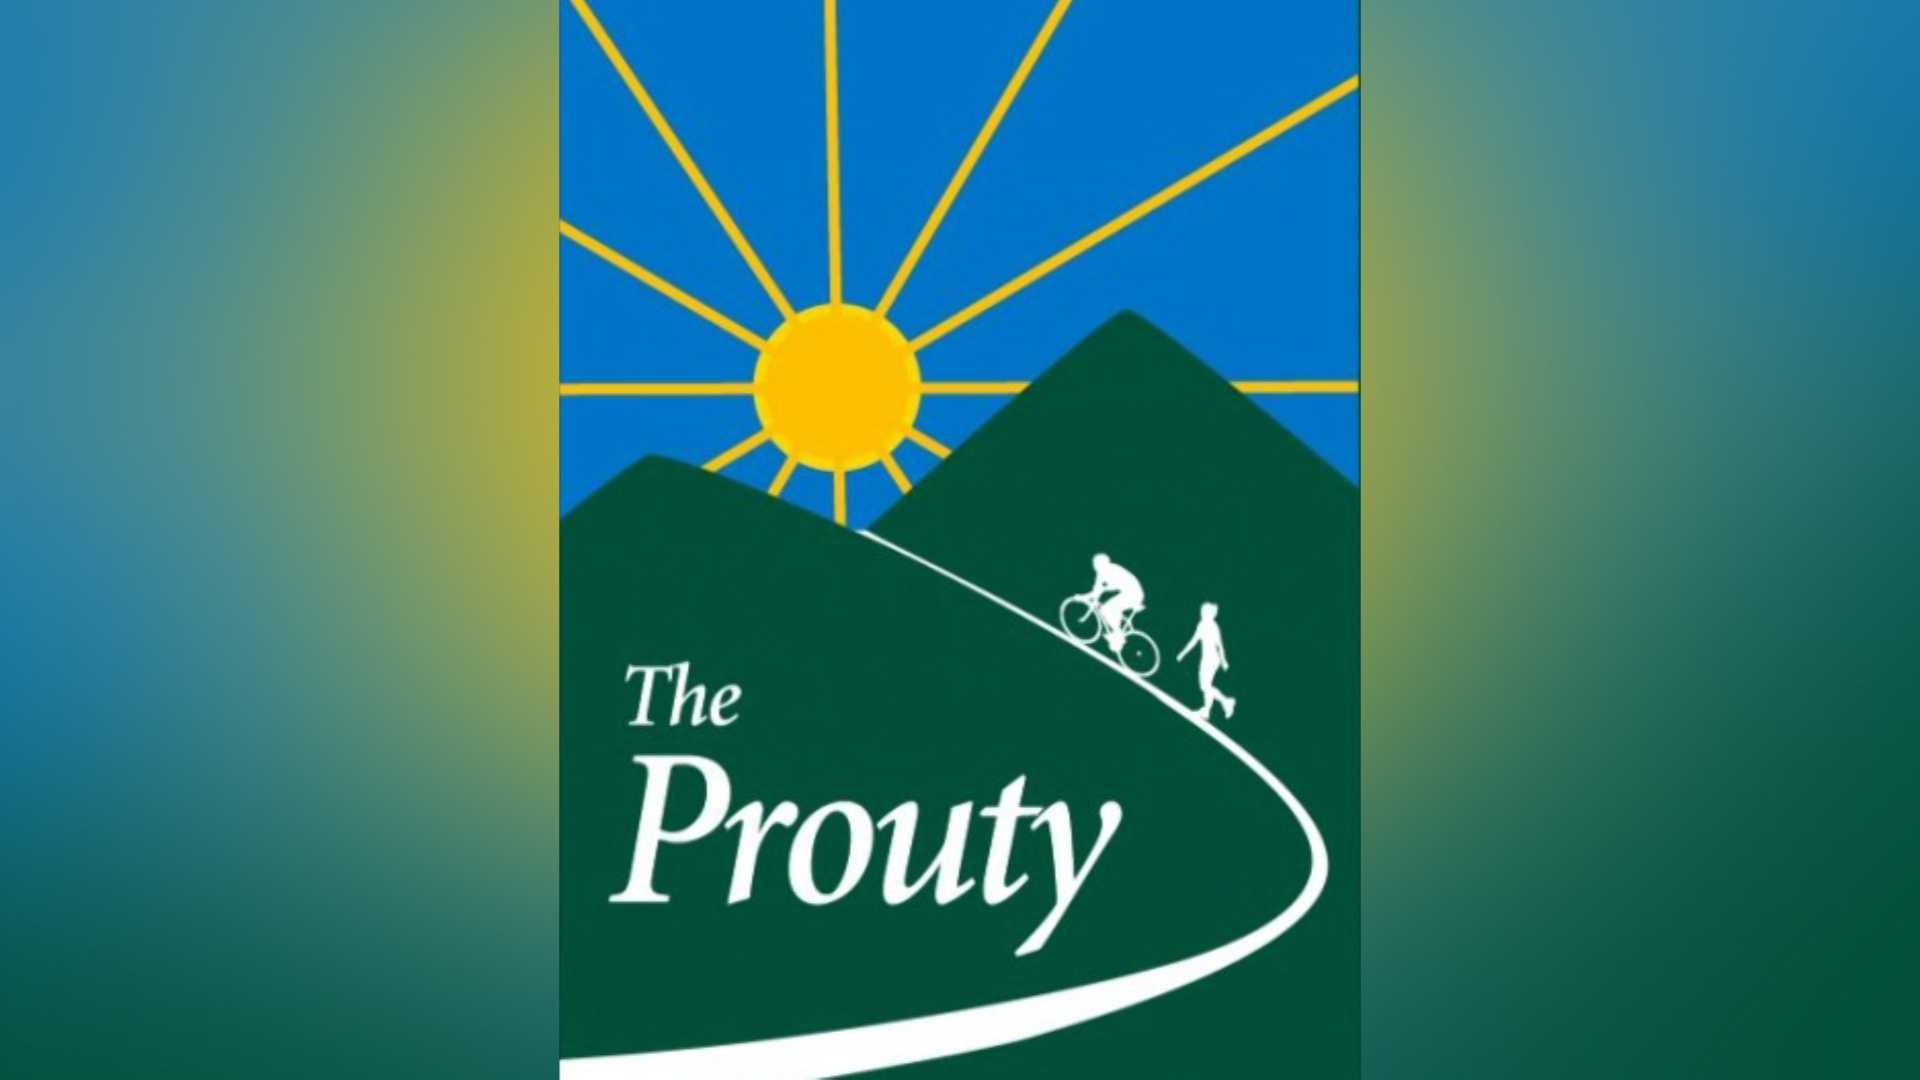 2012 prouty